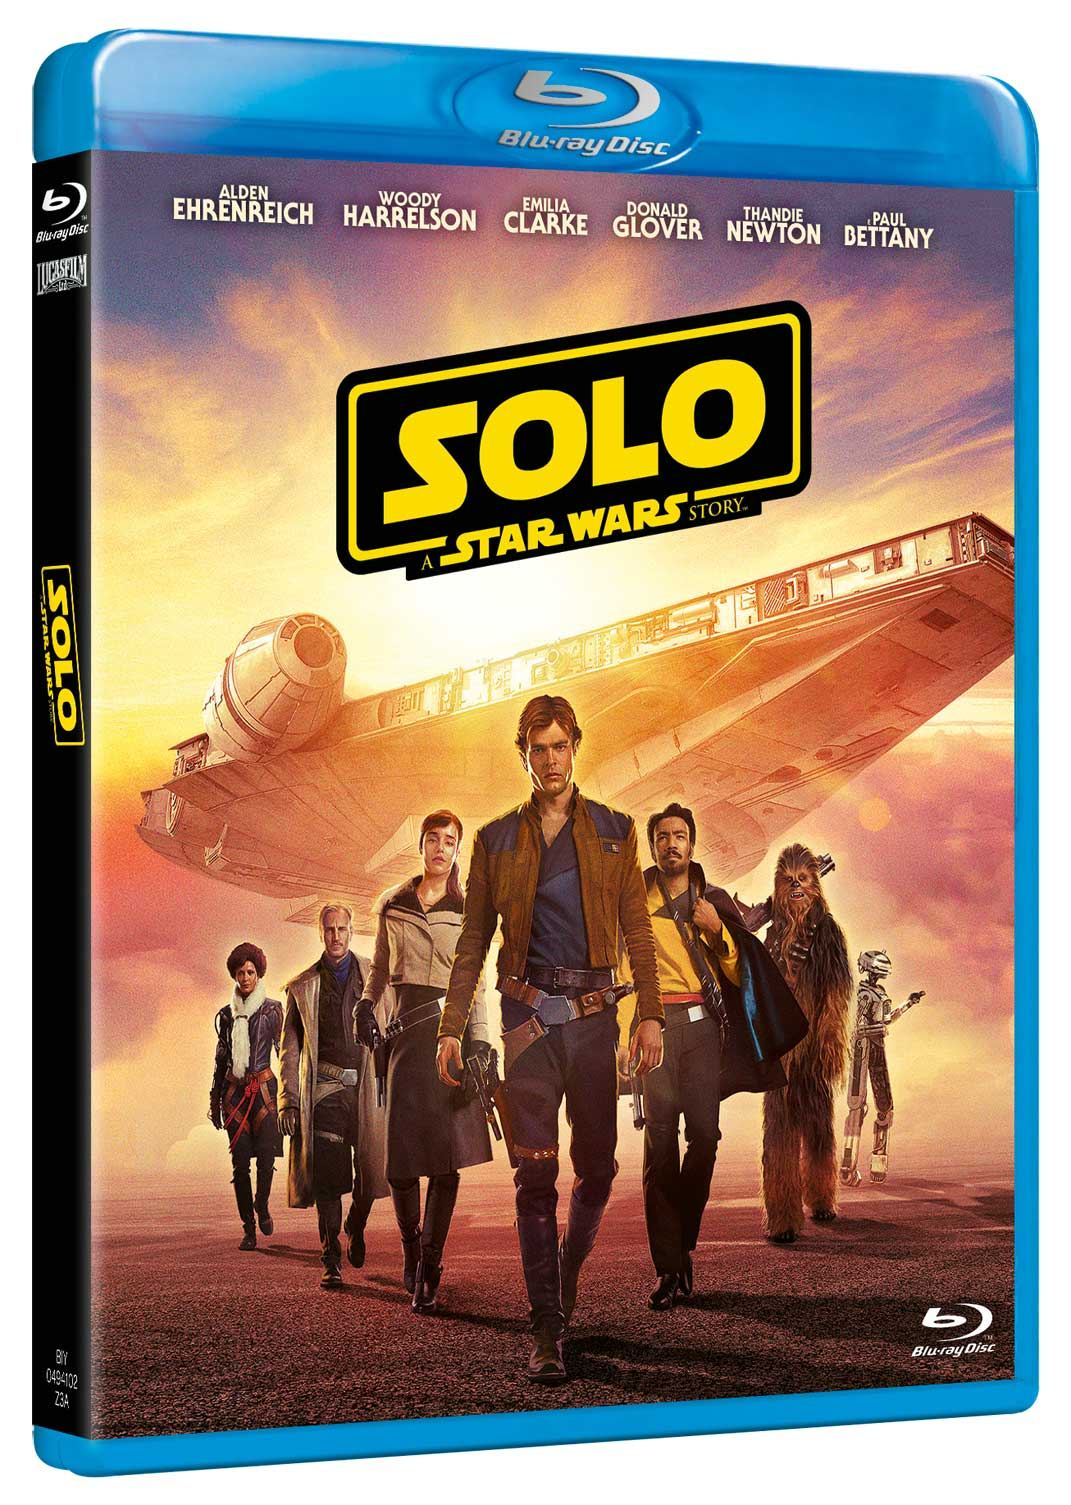 STAR WARS - SOLO: A STAR WARS STORY (2 BLU-RAY)